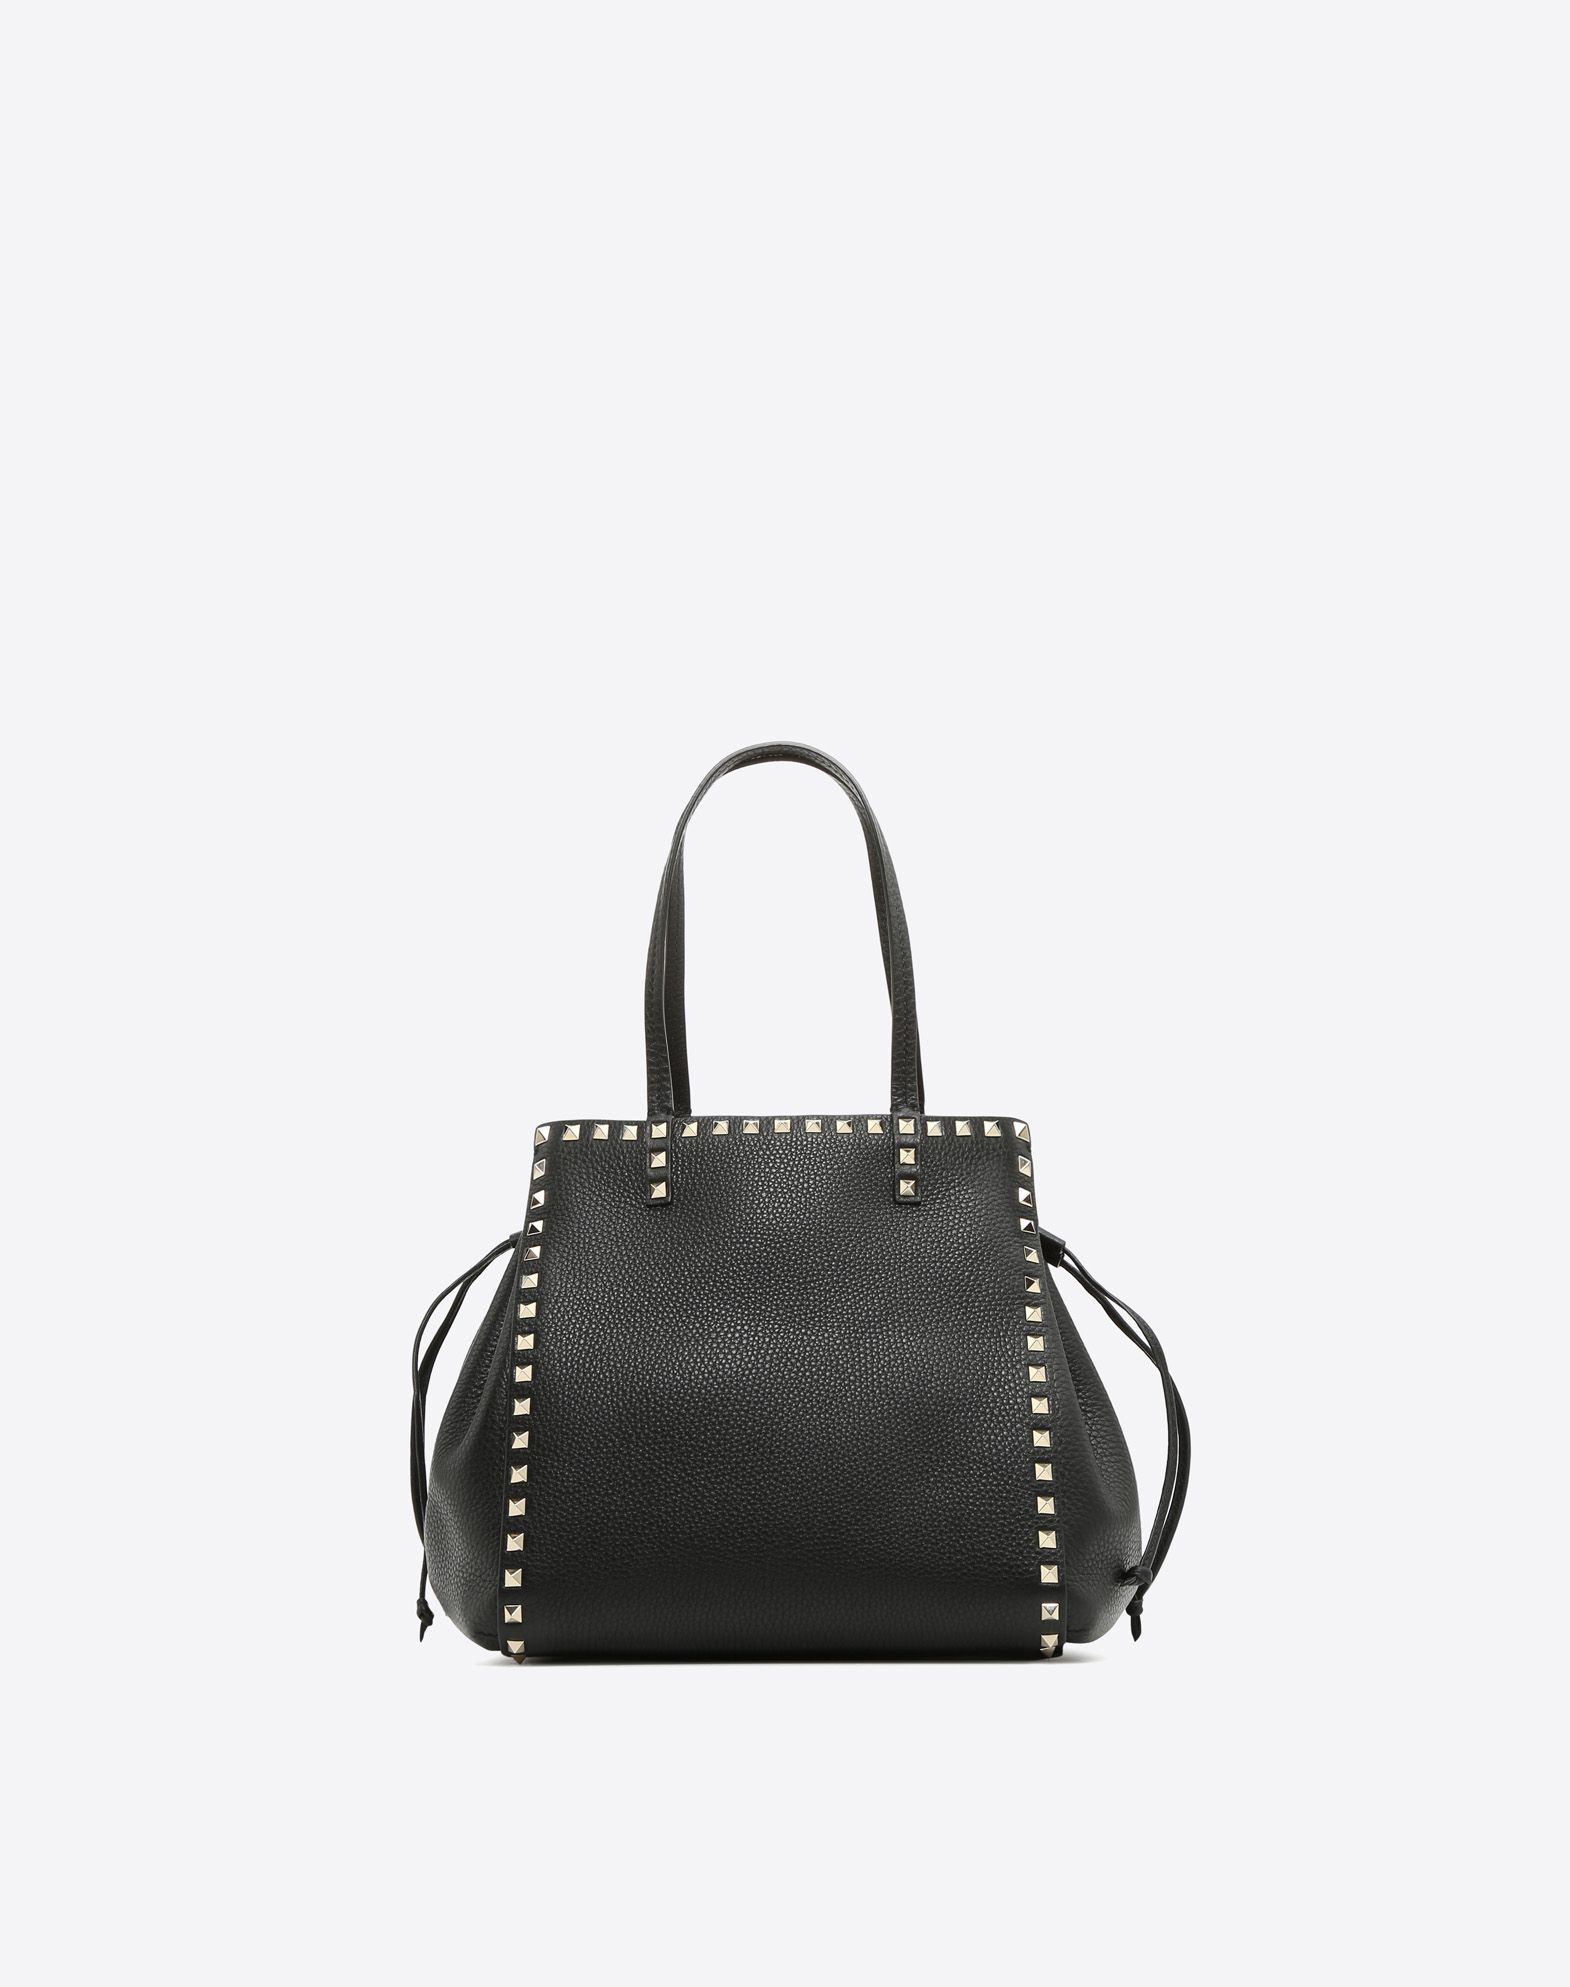 VALENTINO GARAVANI Rockstud Double Handle Bag HANDBAG D f